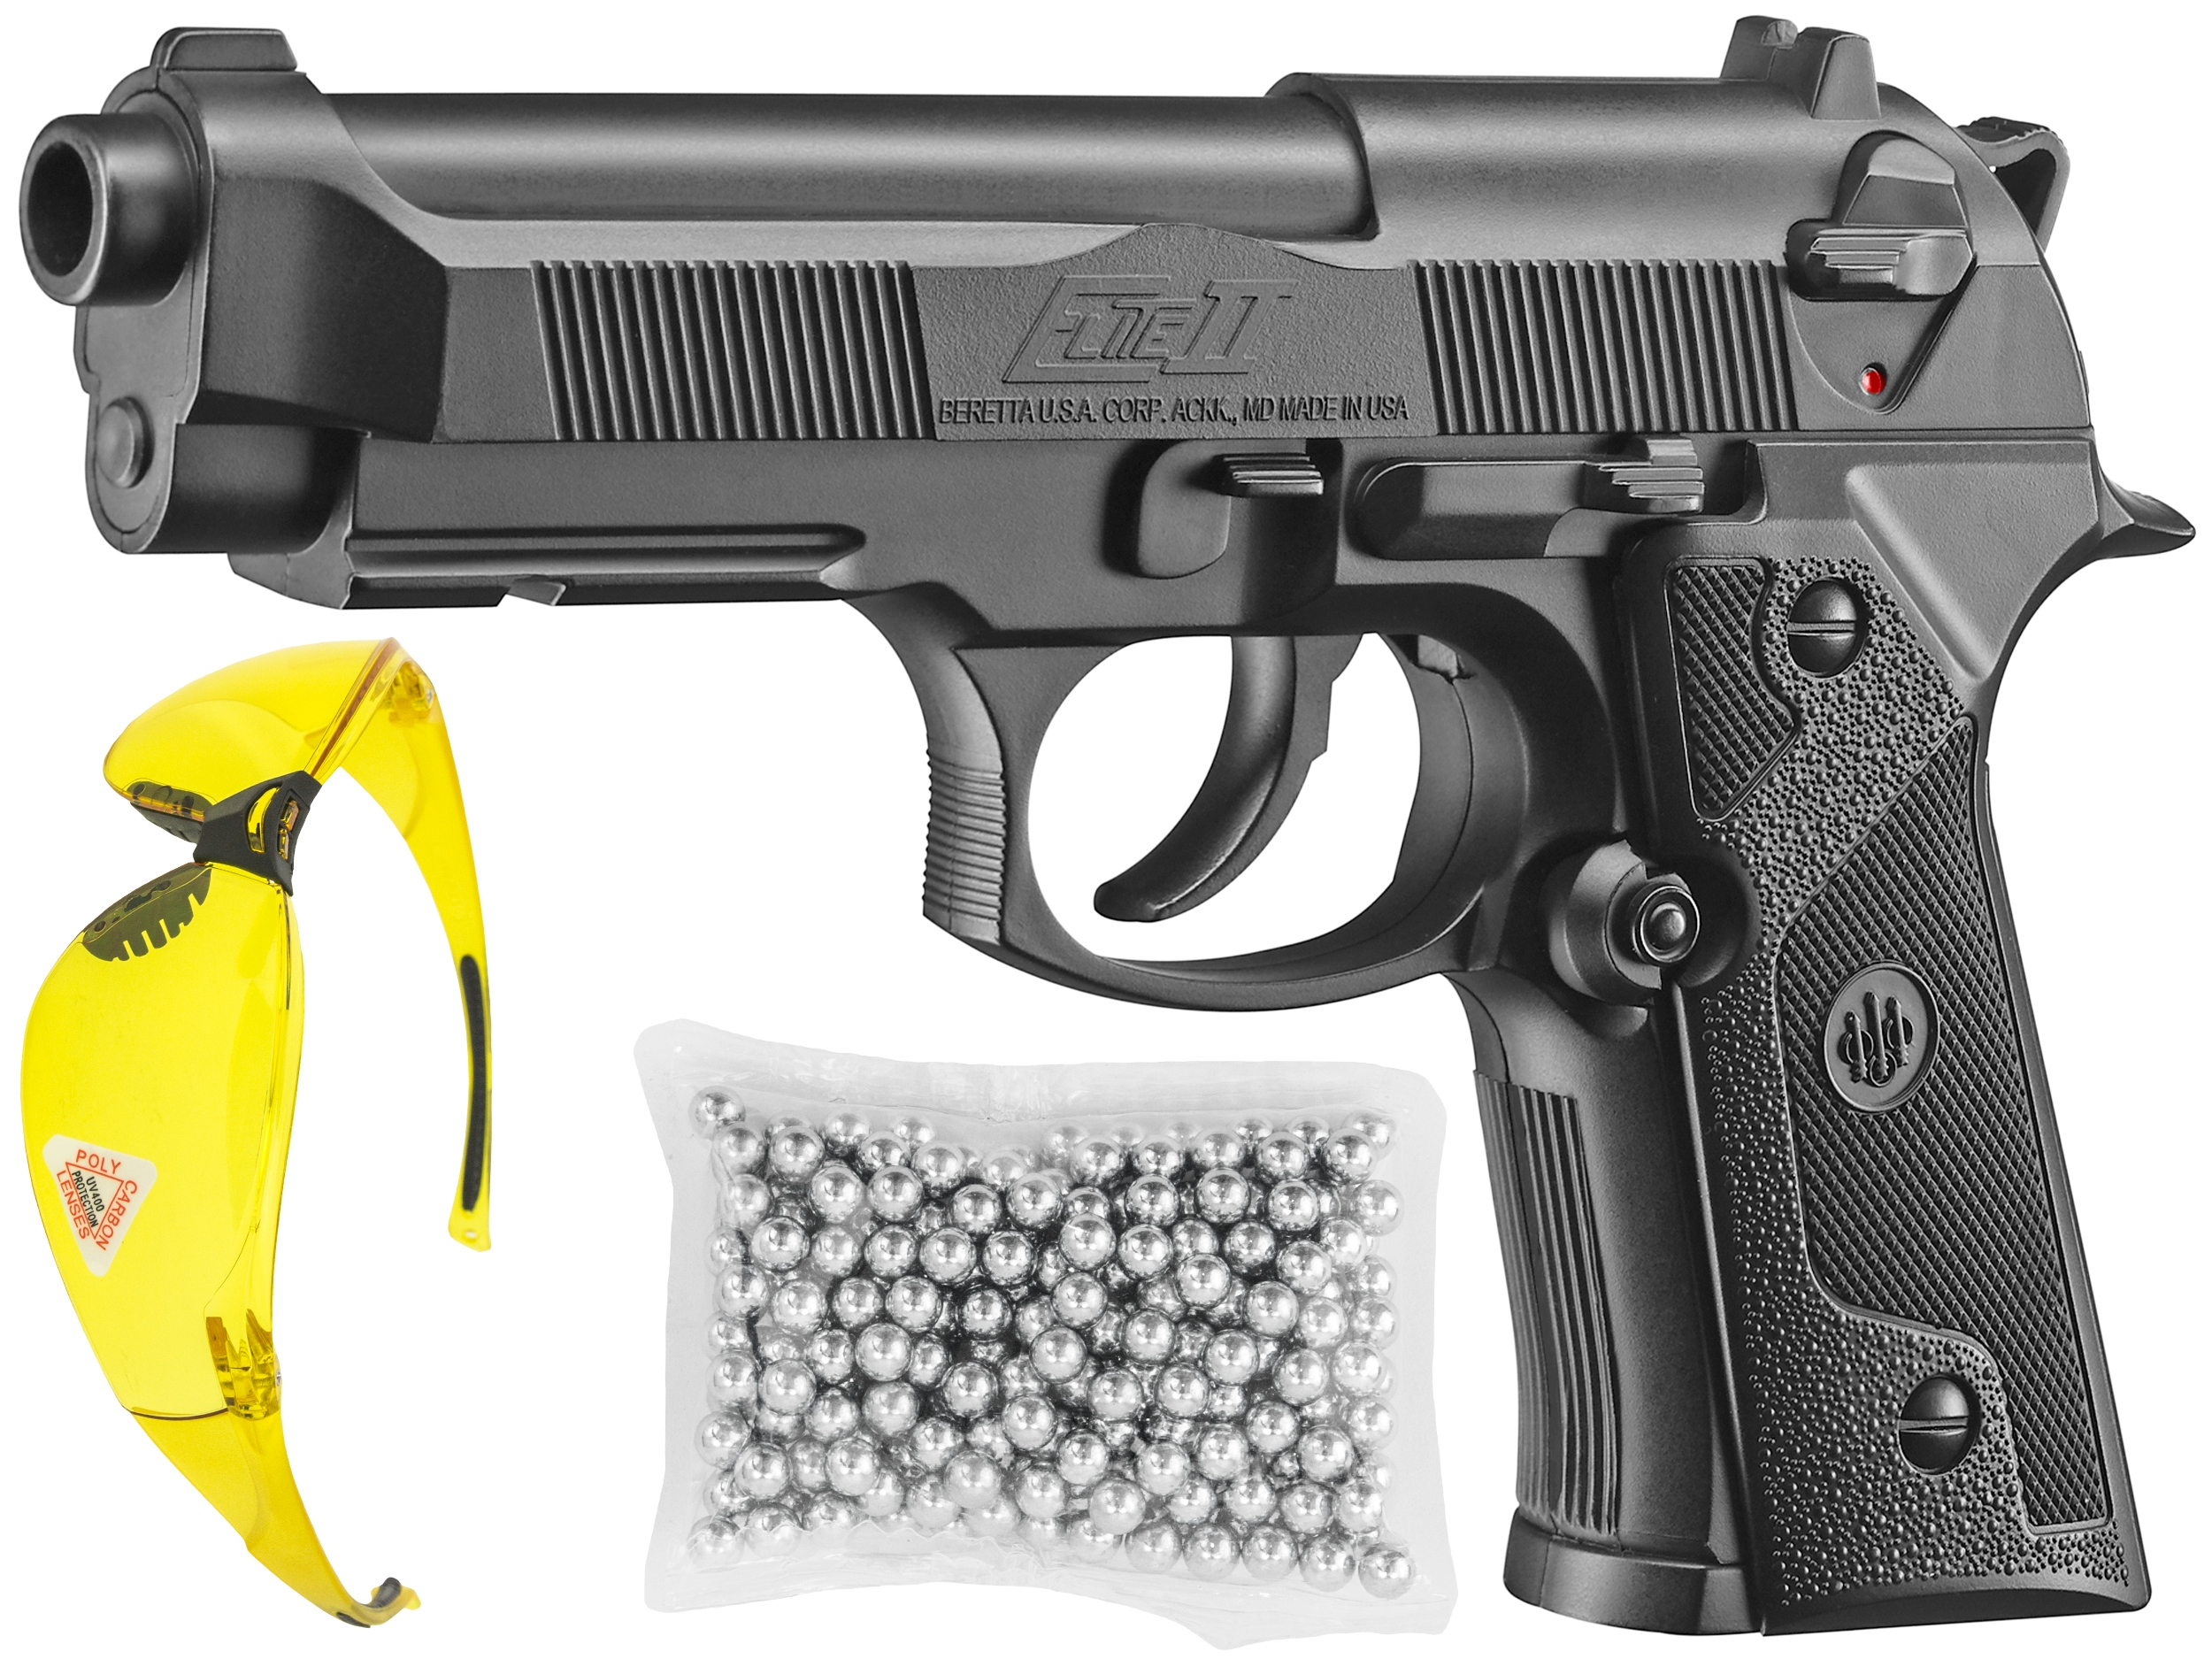 Beretta Elite II 4,5 mm BB CO2 Pistolet wiatrówka